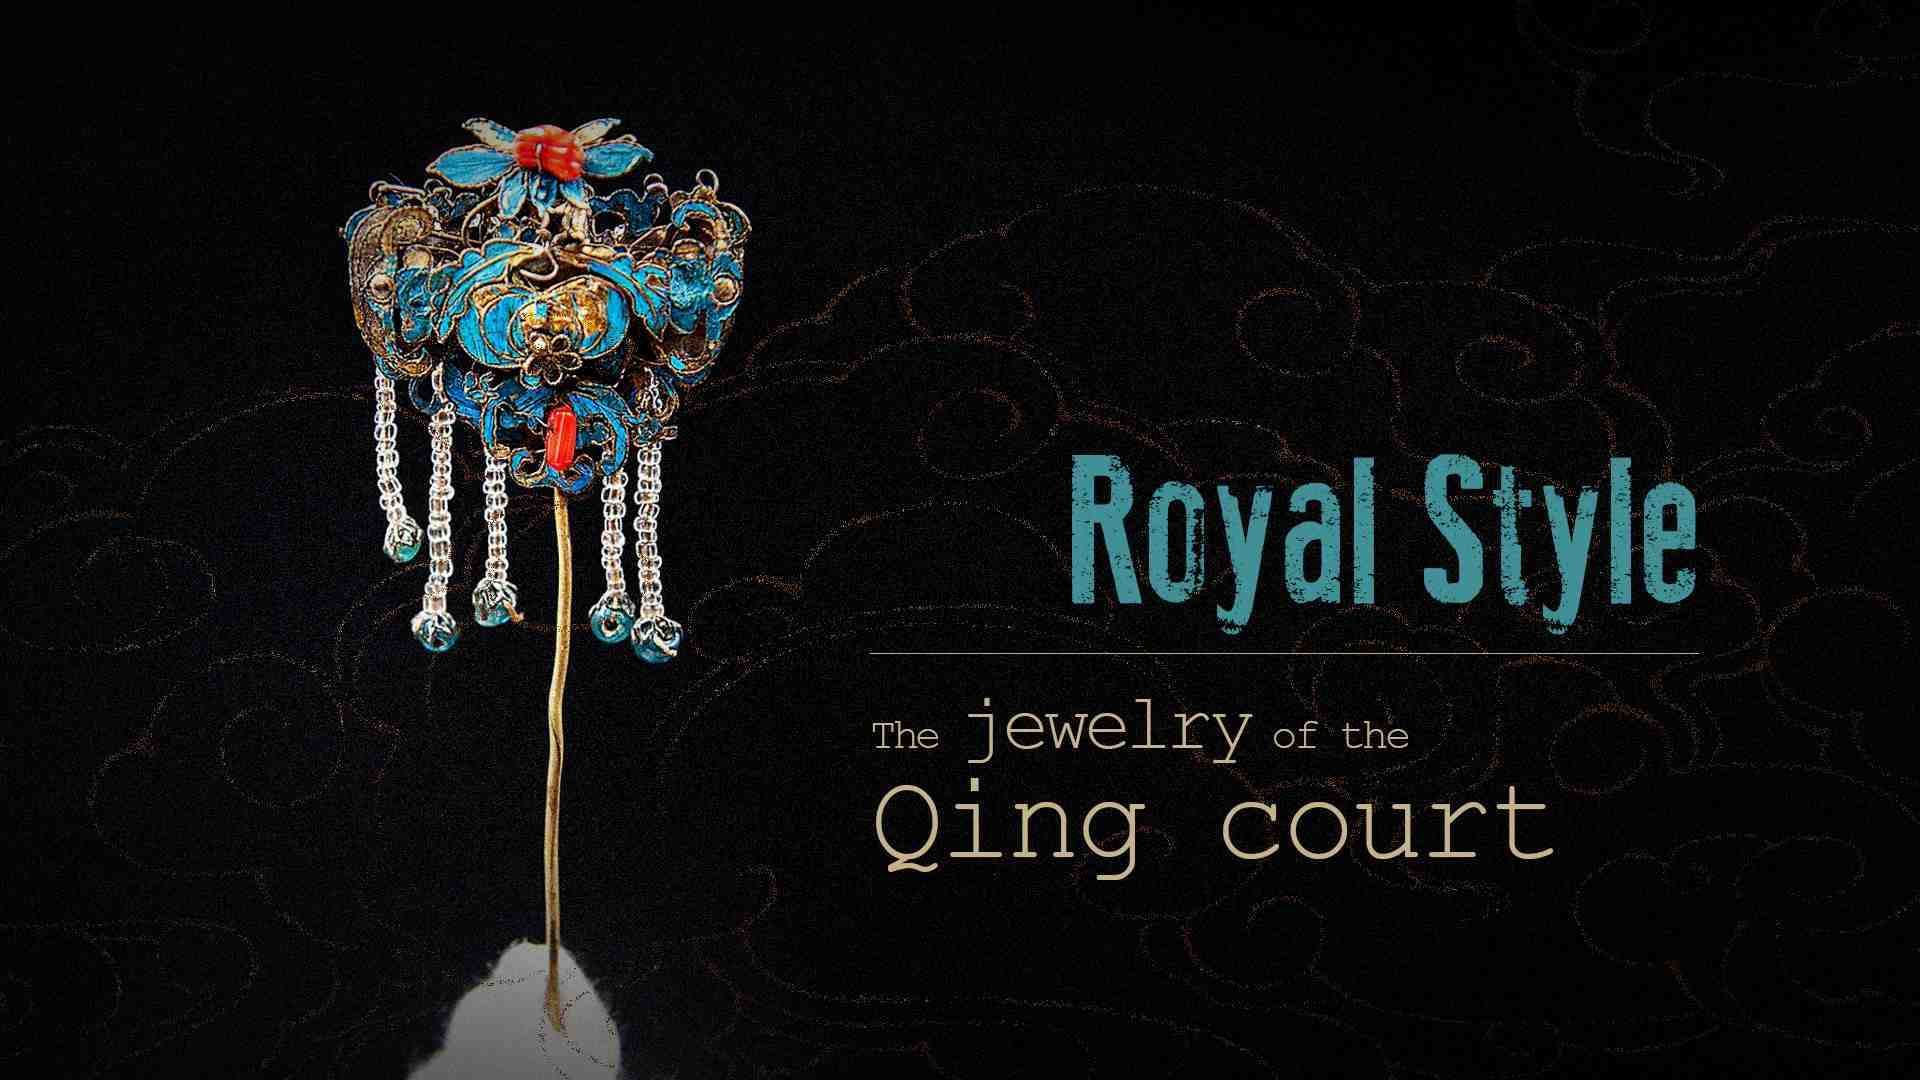 Royal Style: The jewelry of the Qing court